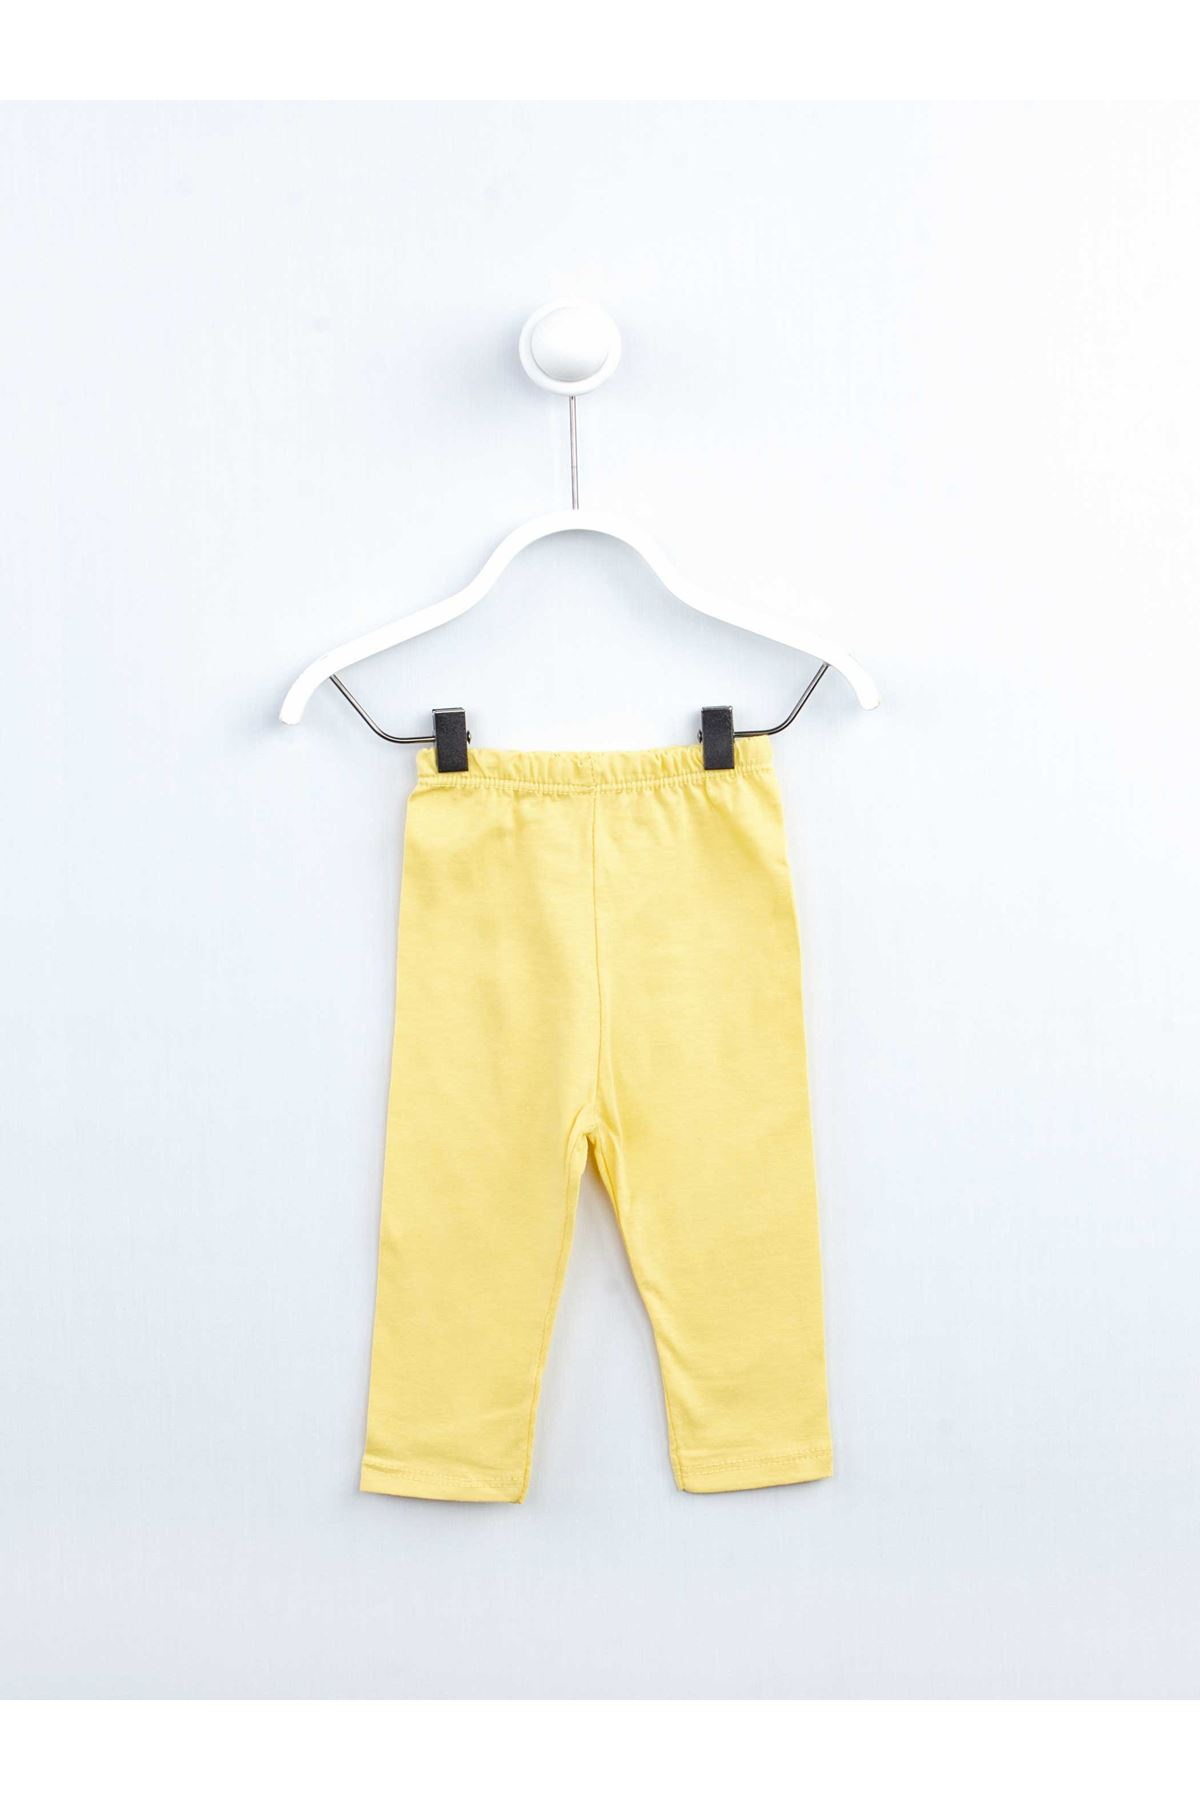 Yellow Baby Girl The tights 2 Piece Set Suit Girls Cotton Seasonal Flowering Ribbons Casual Clothing Outfit dresses